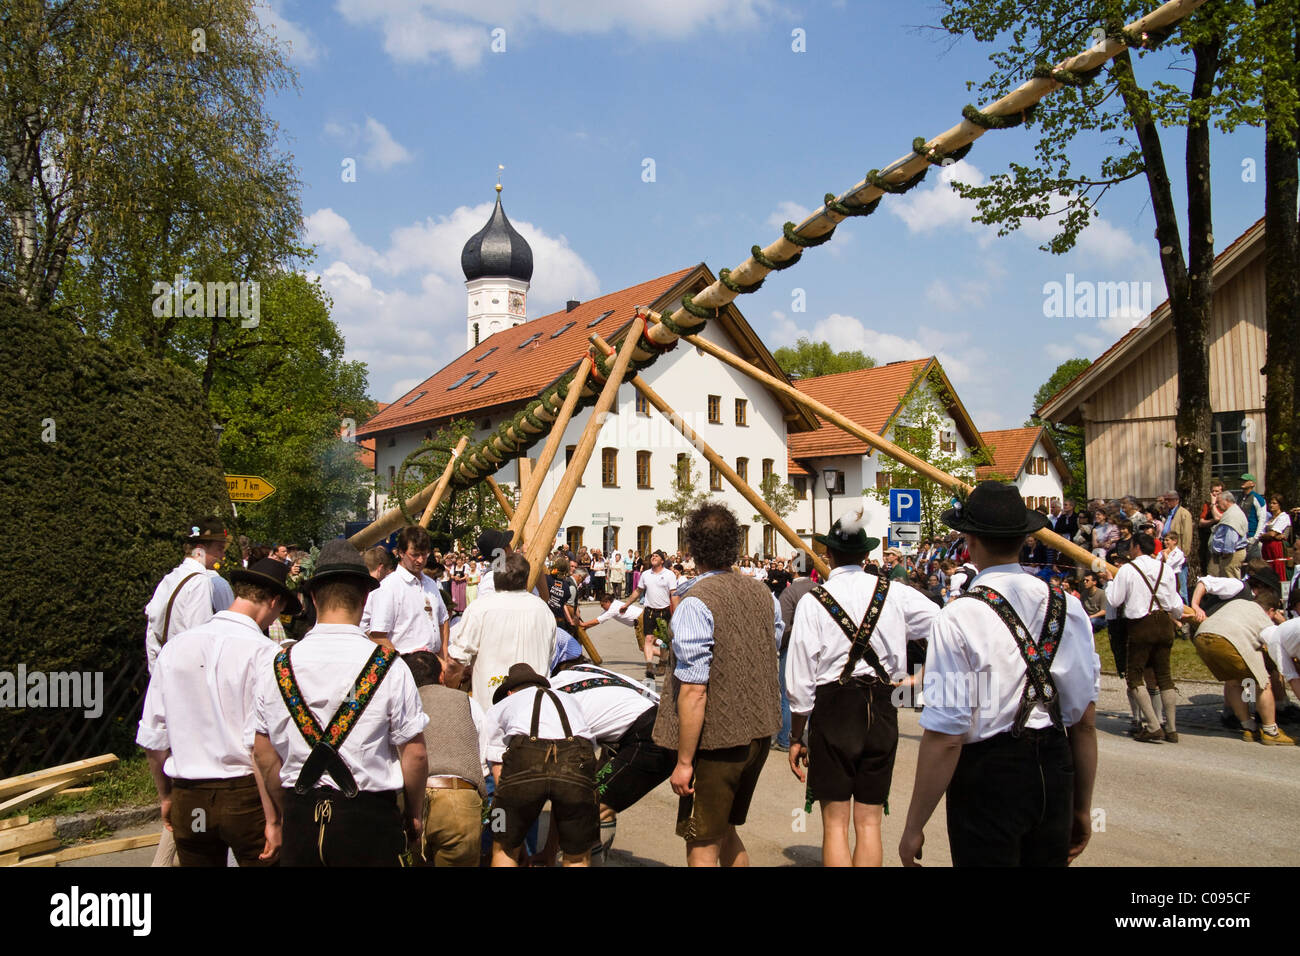 Setting up the traditional maypole in Iffeldorf, Upper Bavaria, Germany, Europe - Stock Image